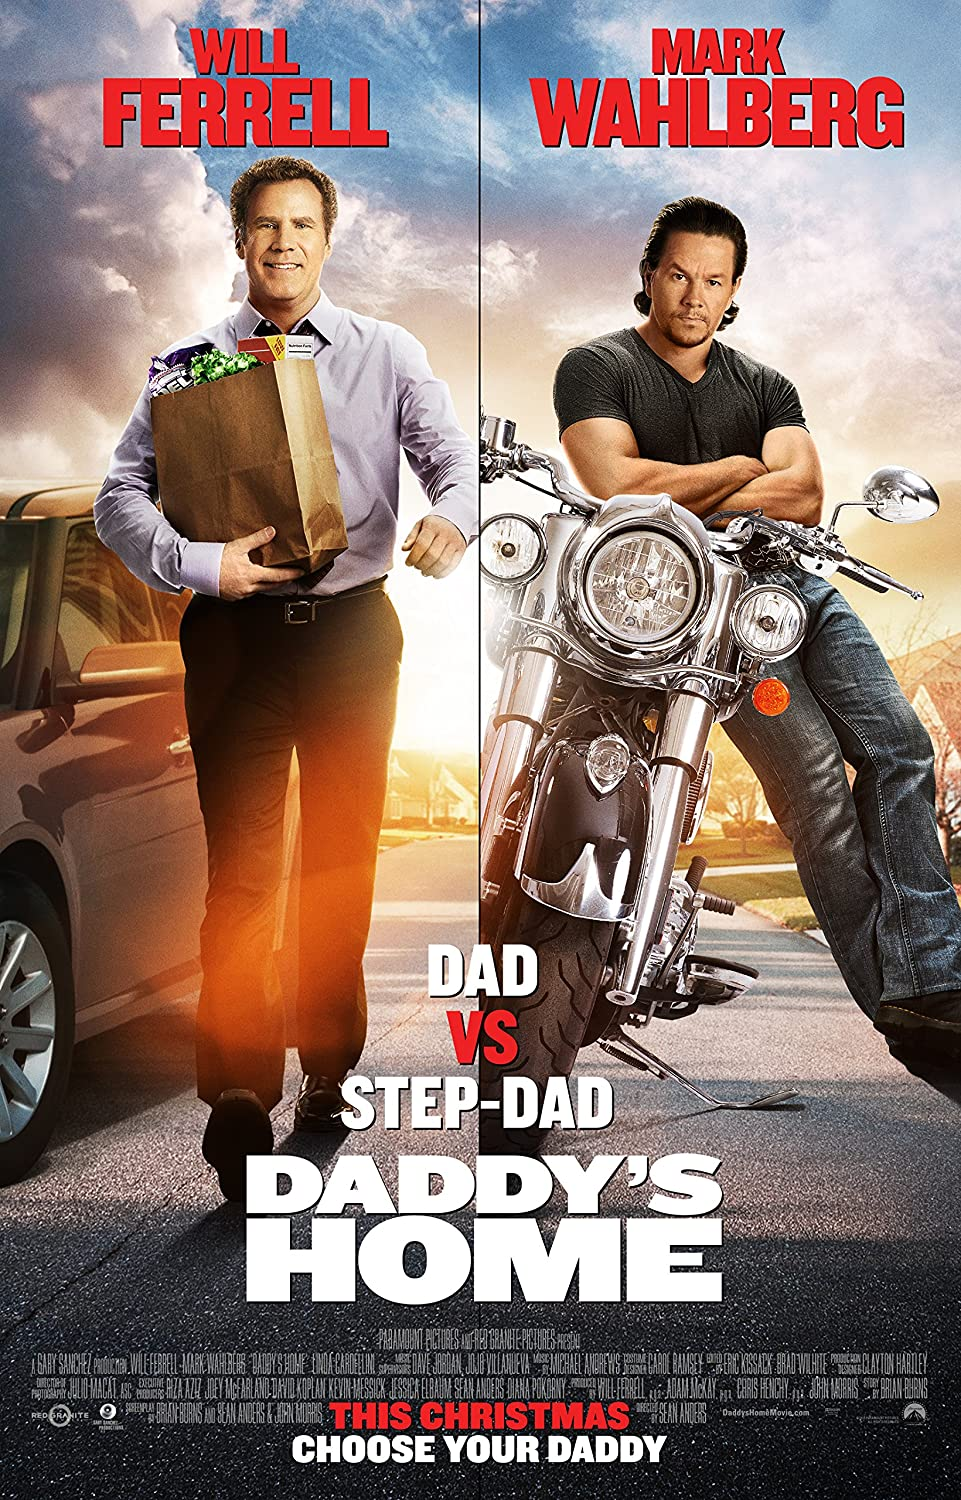 Amazon.com: Daddy's Home - Movie Poster (2016), Size 24 x 36 ...